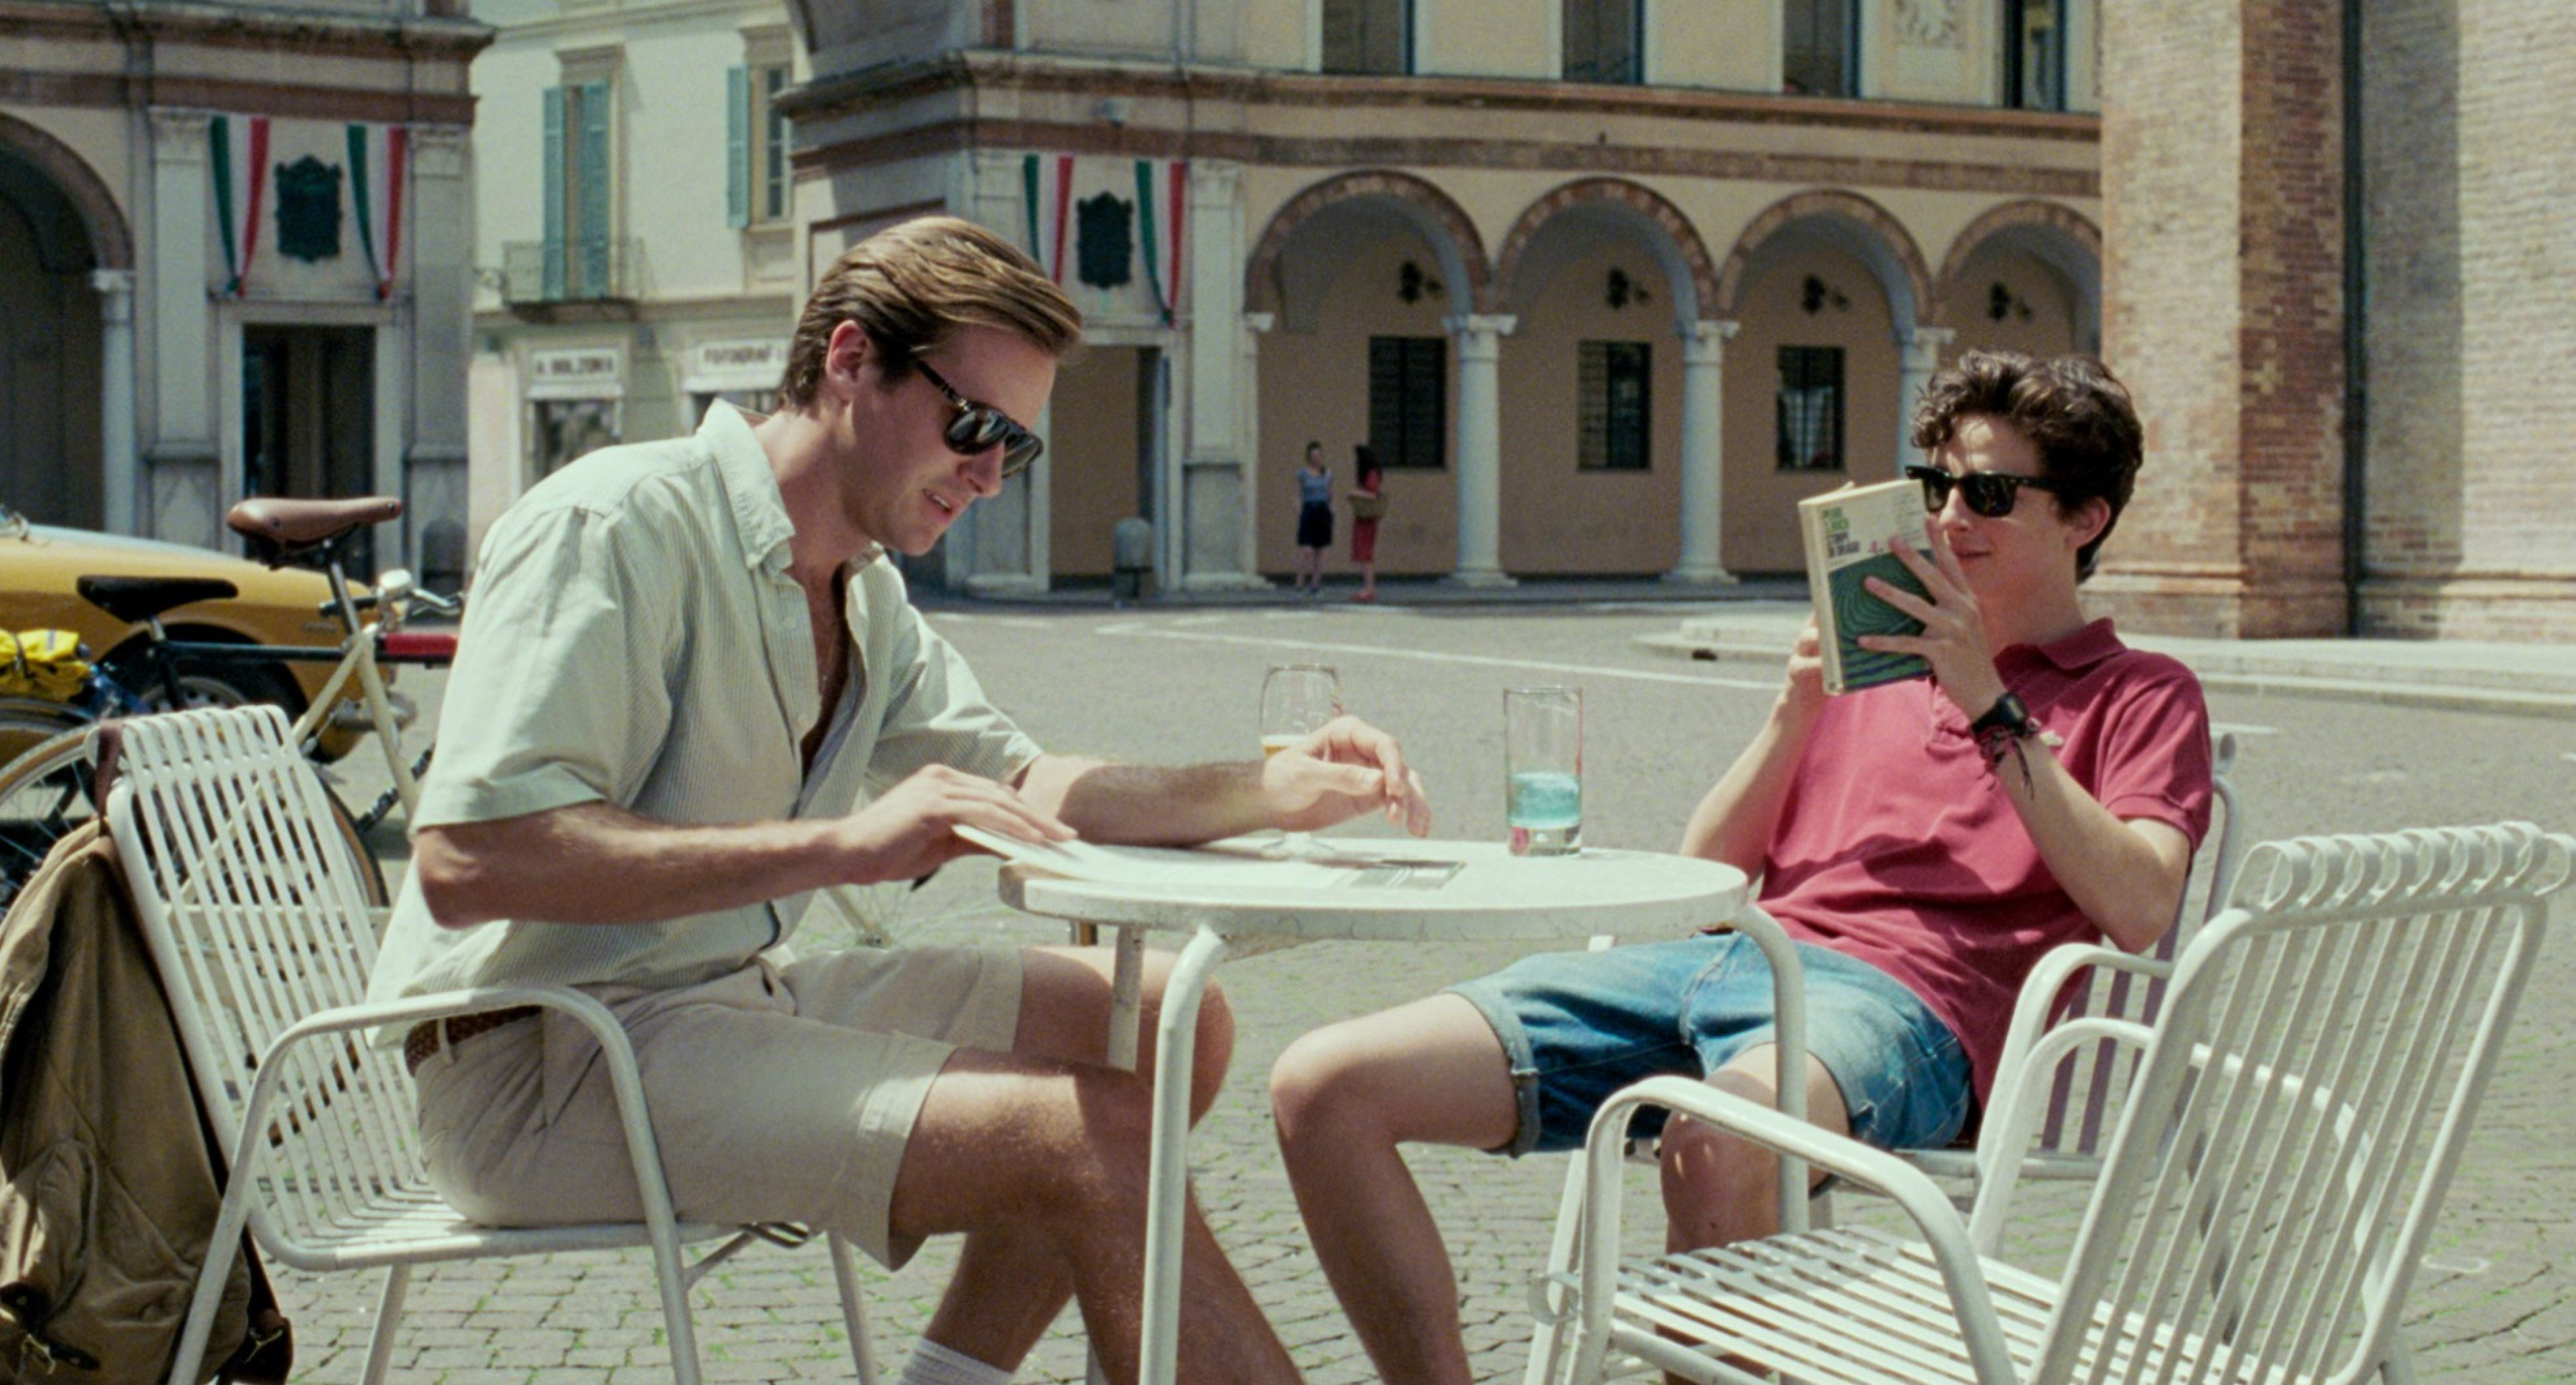 'Call Me By Your Name' Sequel Plans Are Going Ahead After All, Director Luca Guadagnino